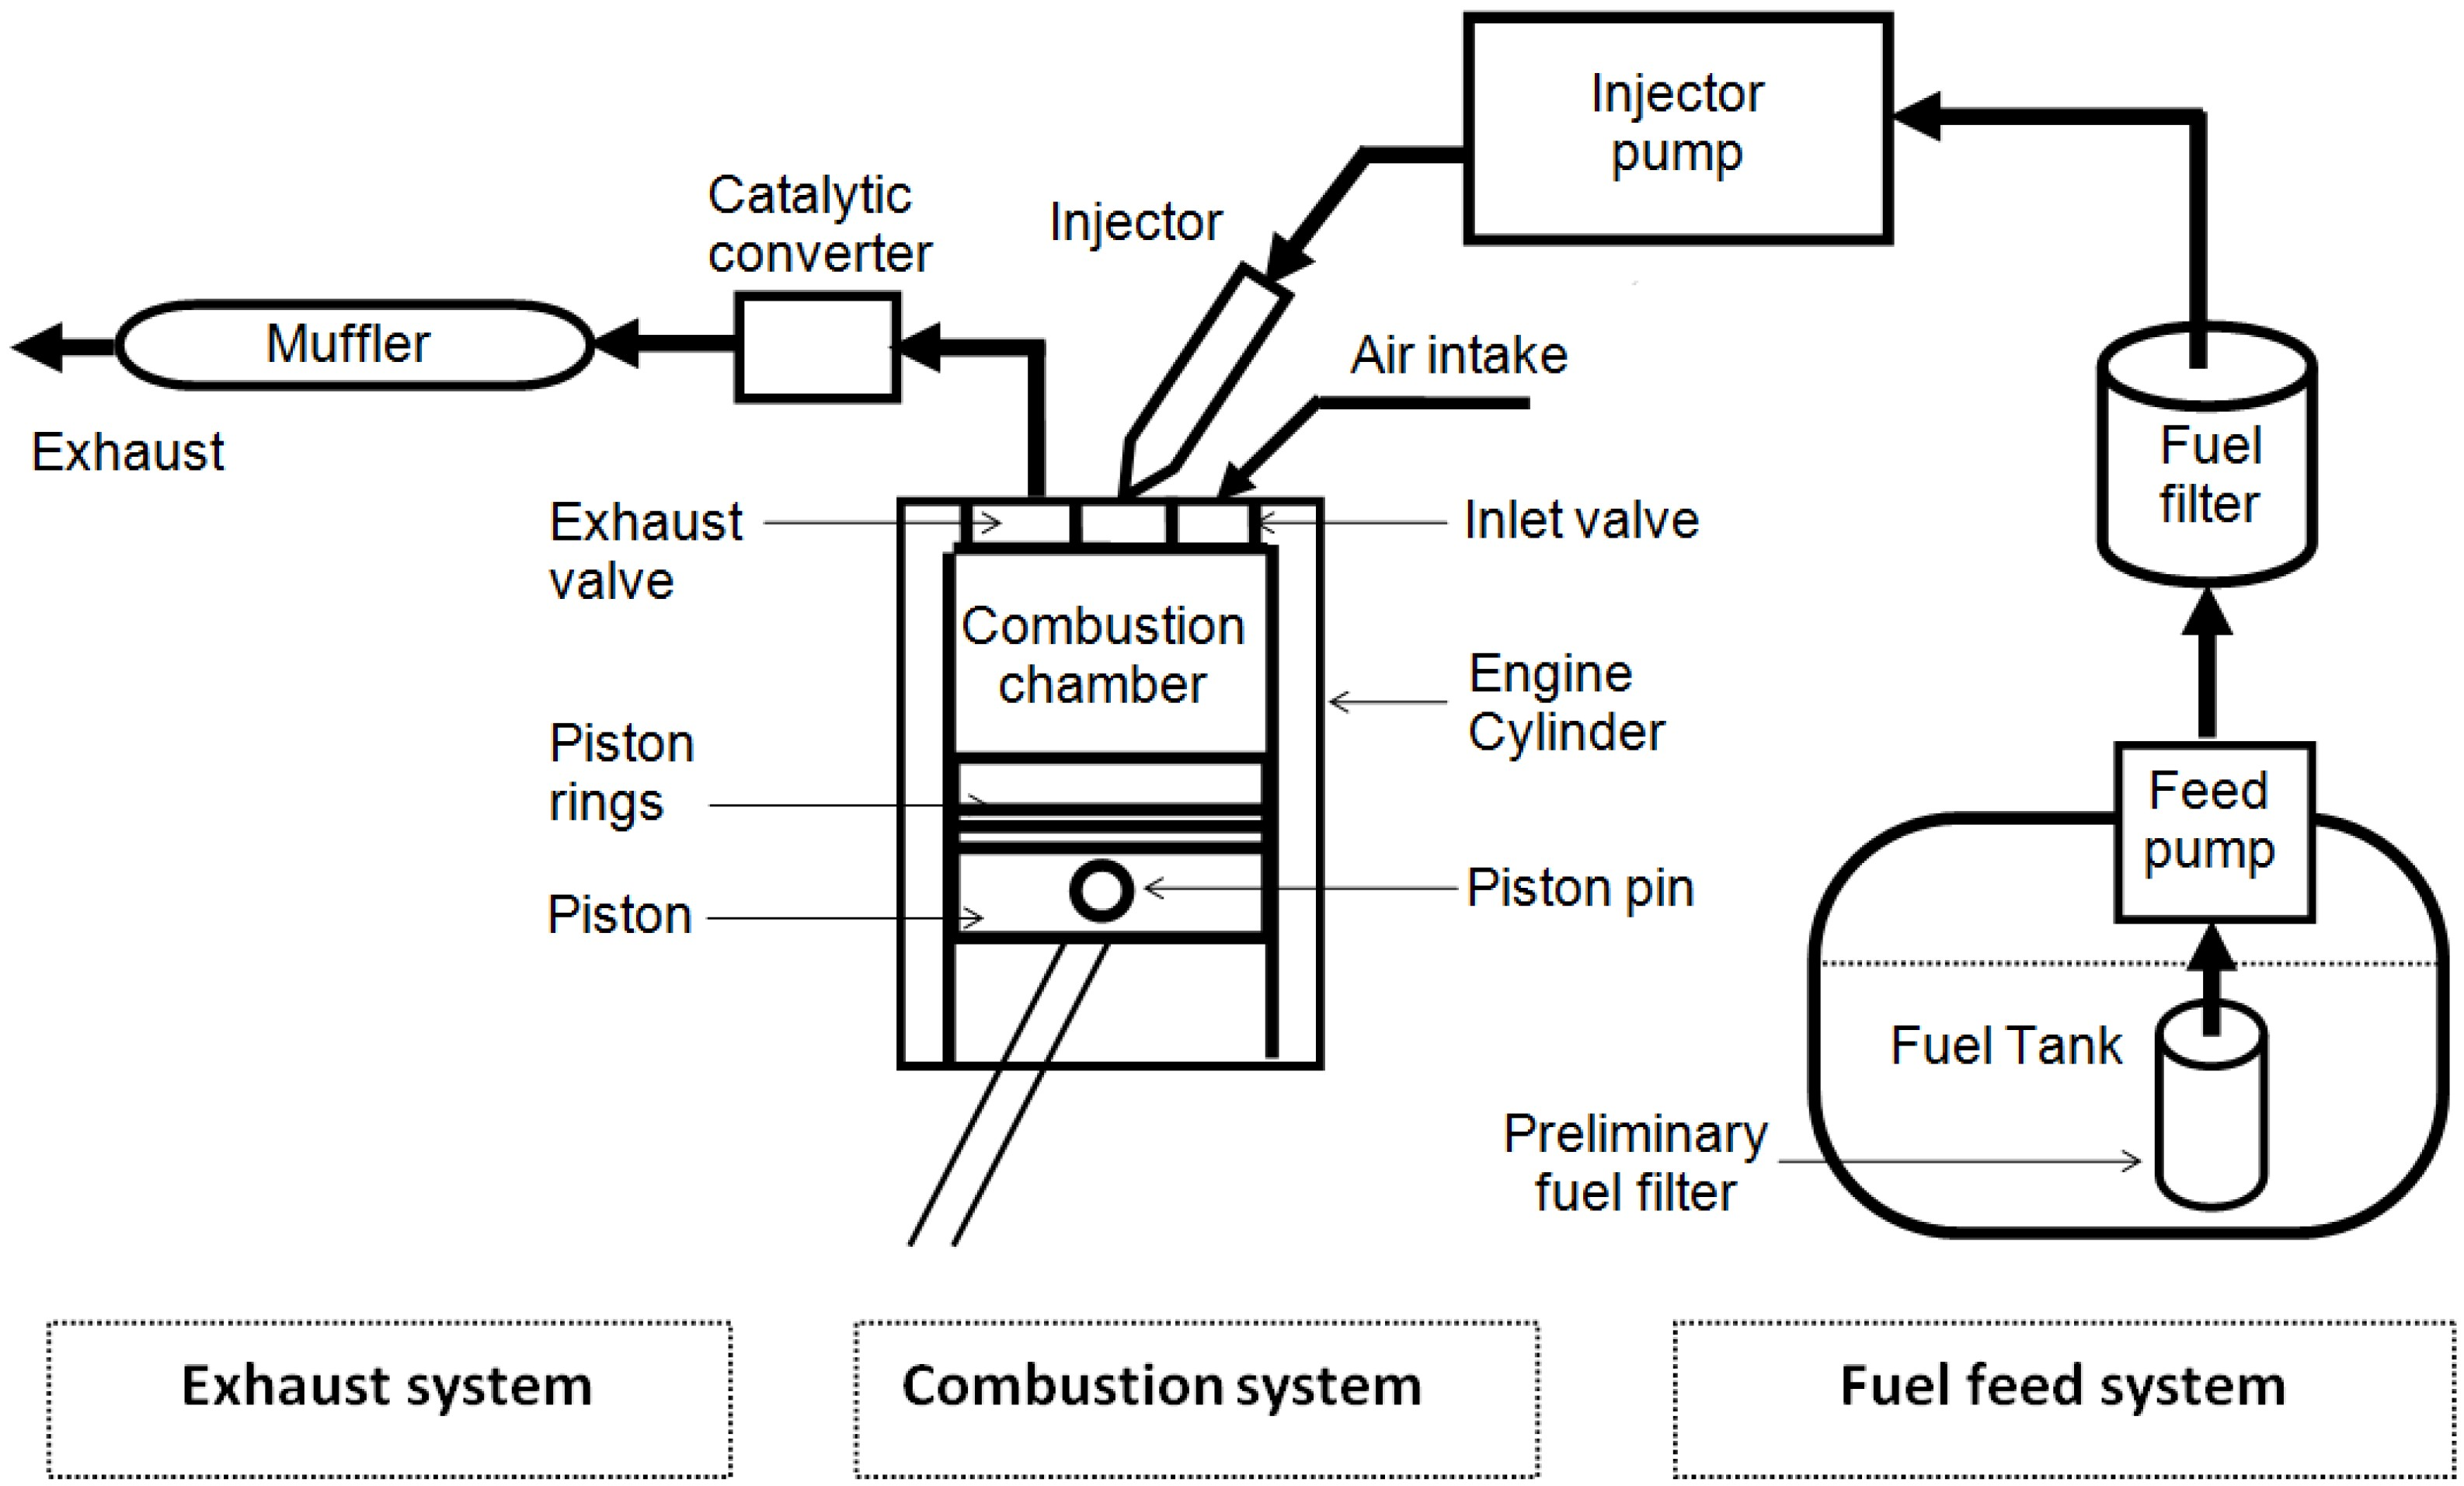 Diesel Engine Fuel System Diagram My Wiring Energies Free Full Text Of